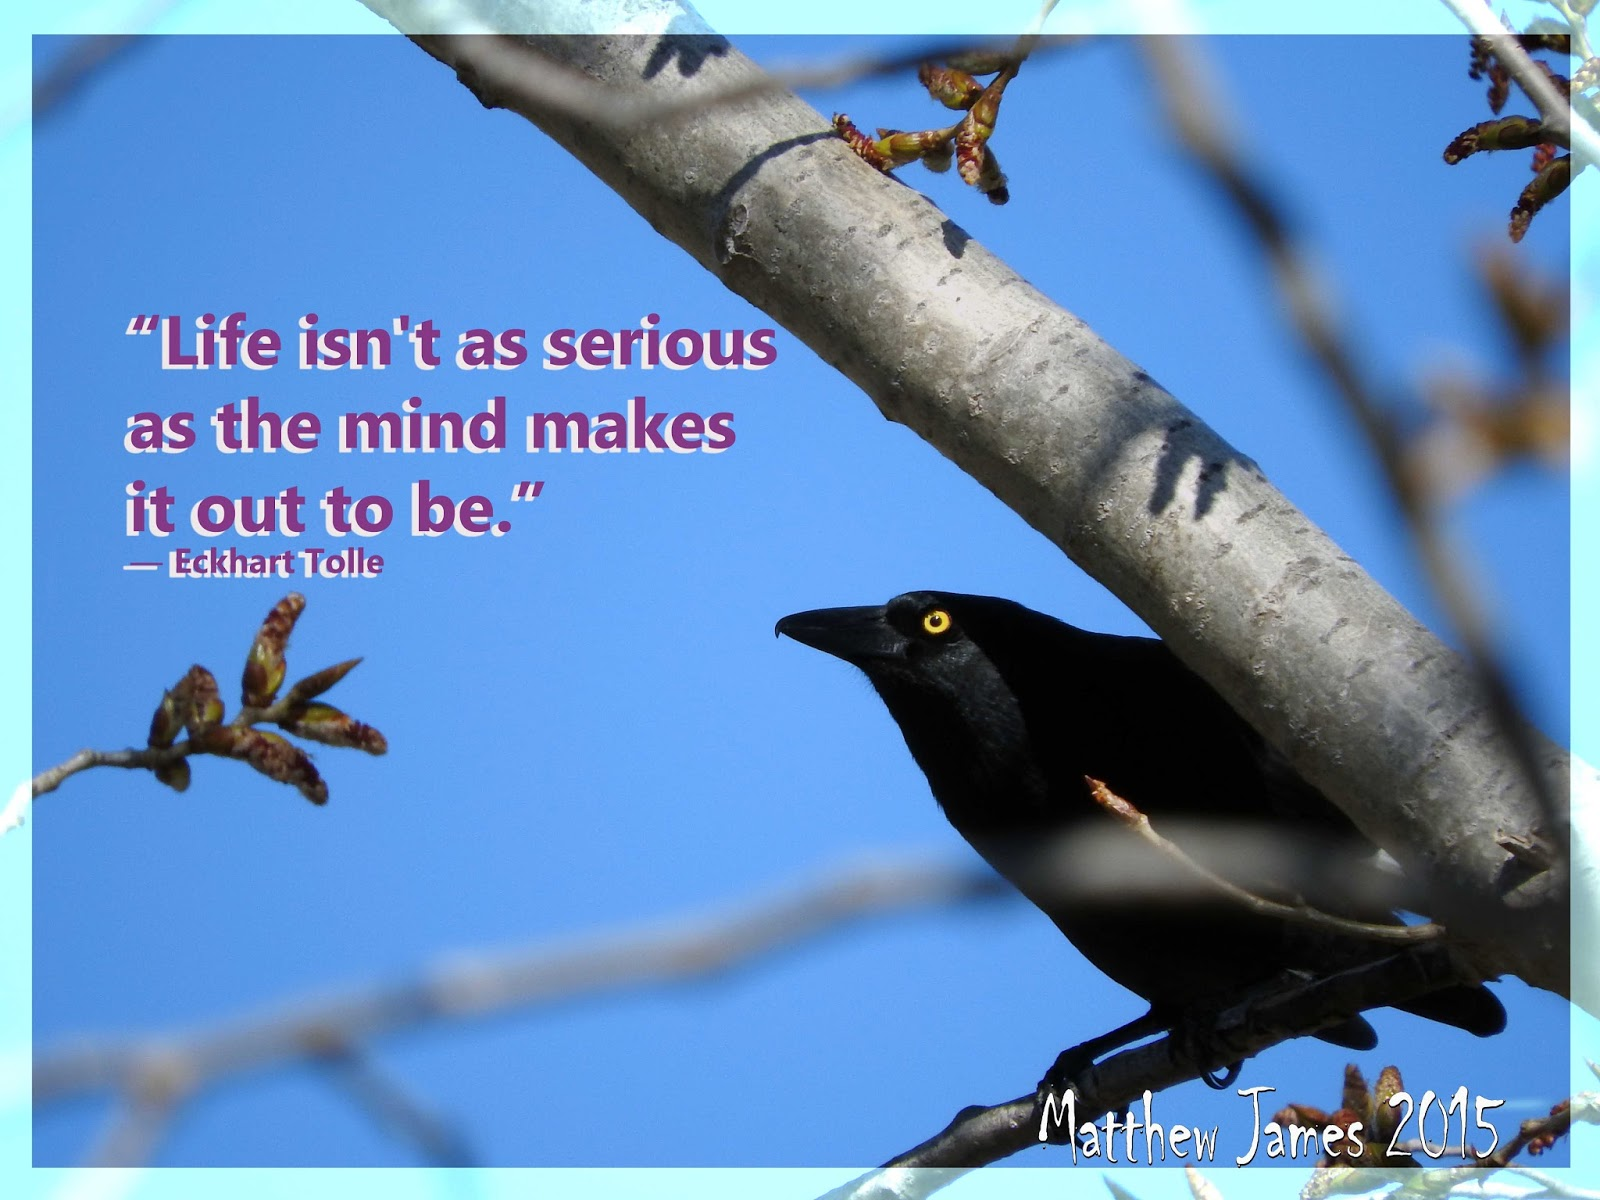 Calendar Mysteries May Magic : A light in the darkness life isn t as serious